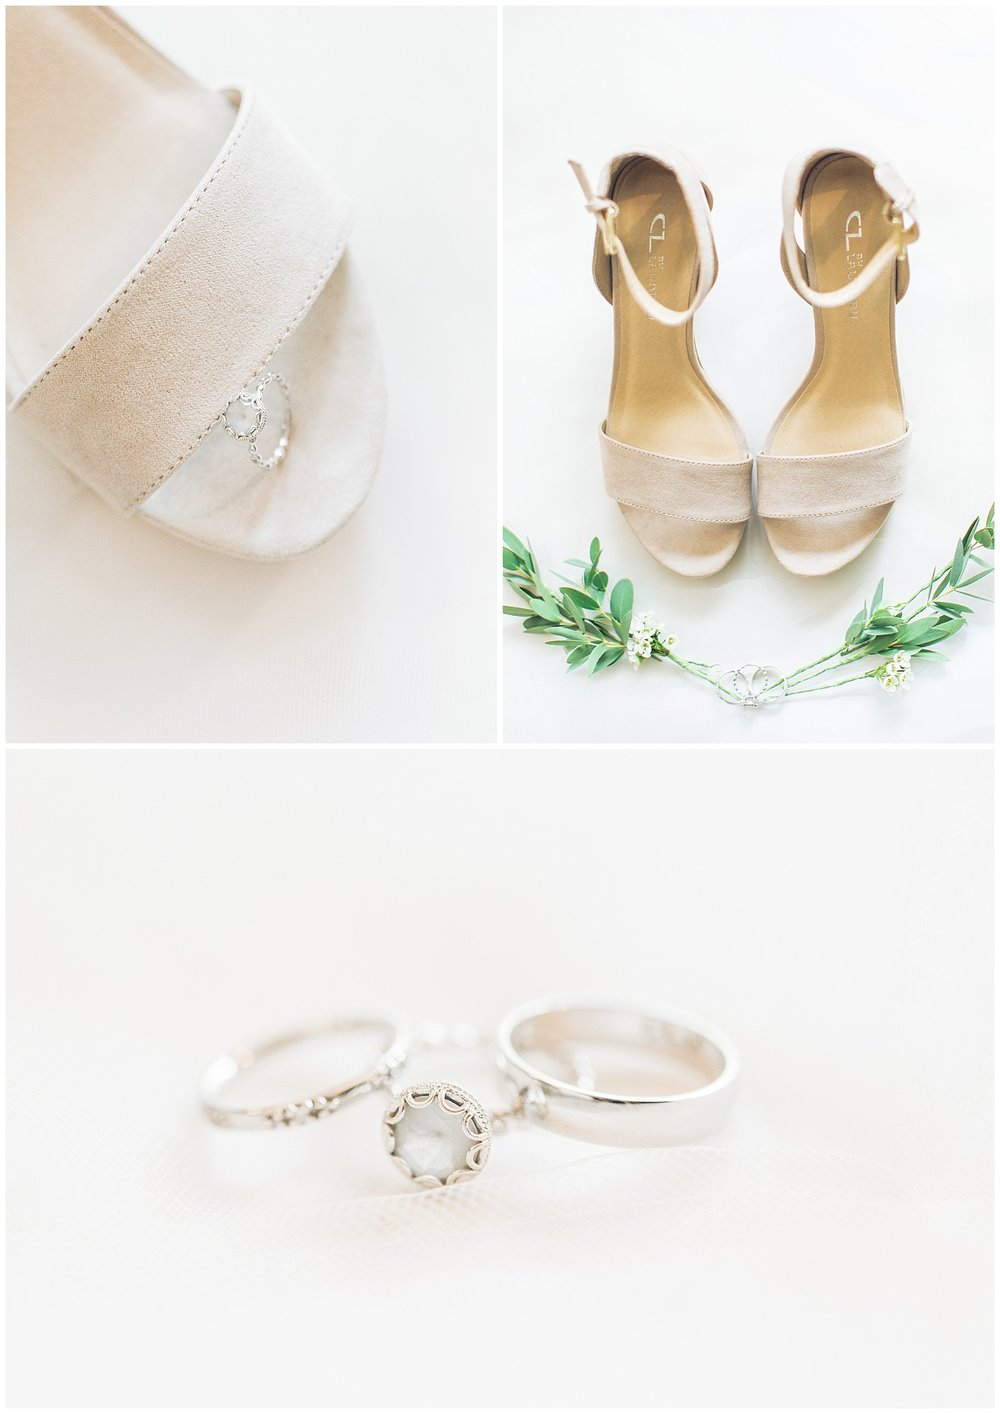 wanderlove-photography-wedding-shoes-wedding-ring-wedding-dress-wedding-details-wainwright-house-elegant-autumn-wedding